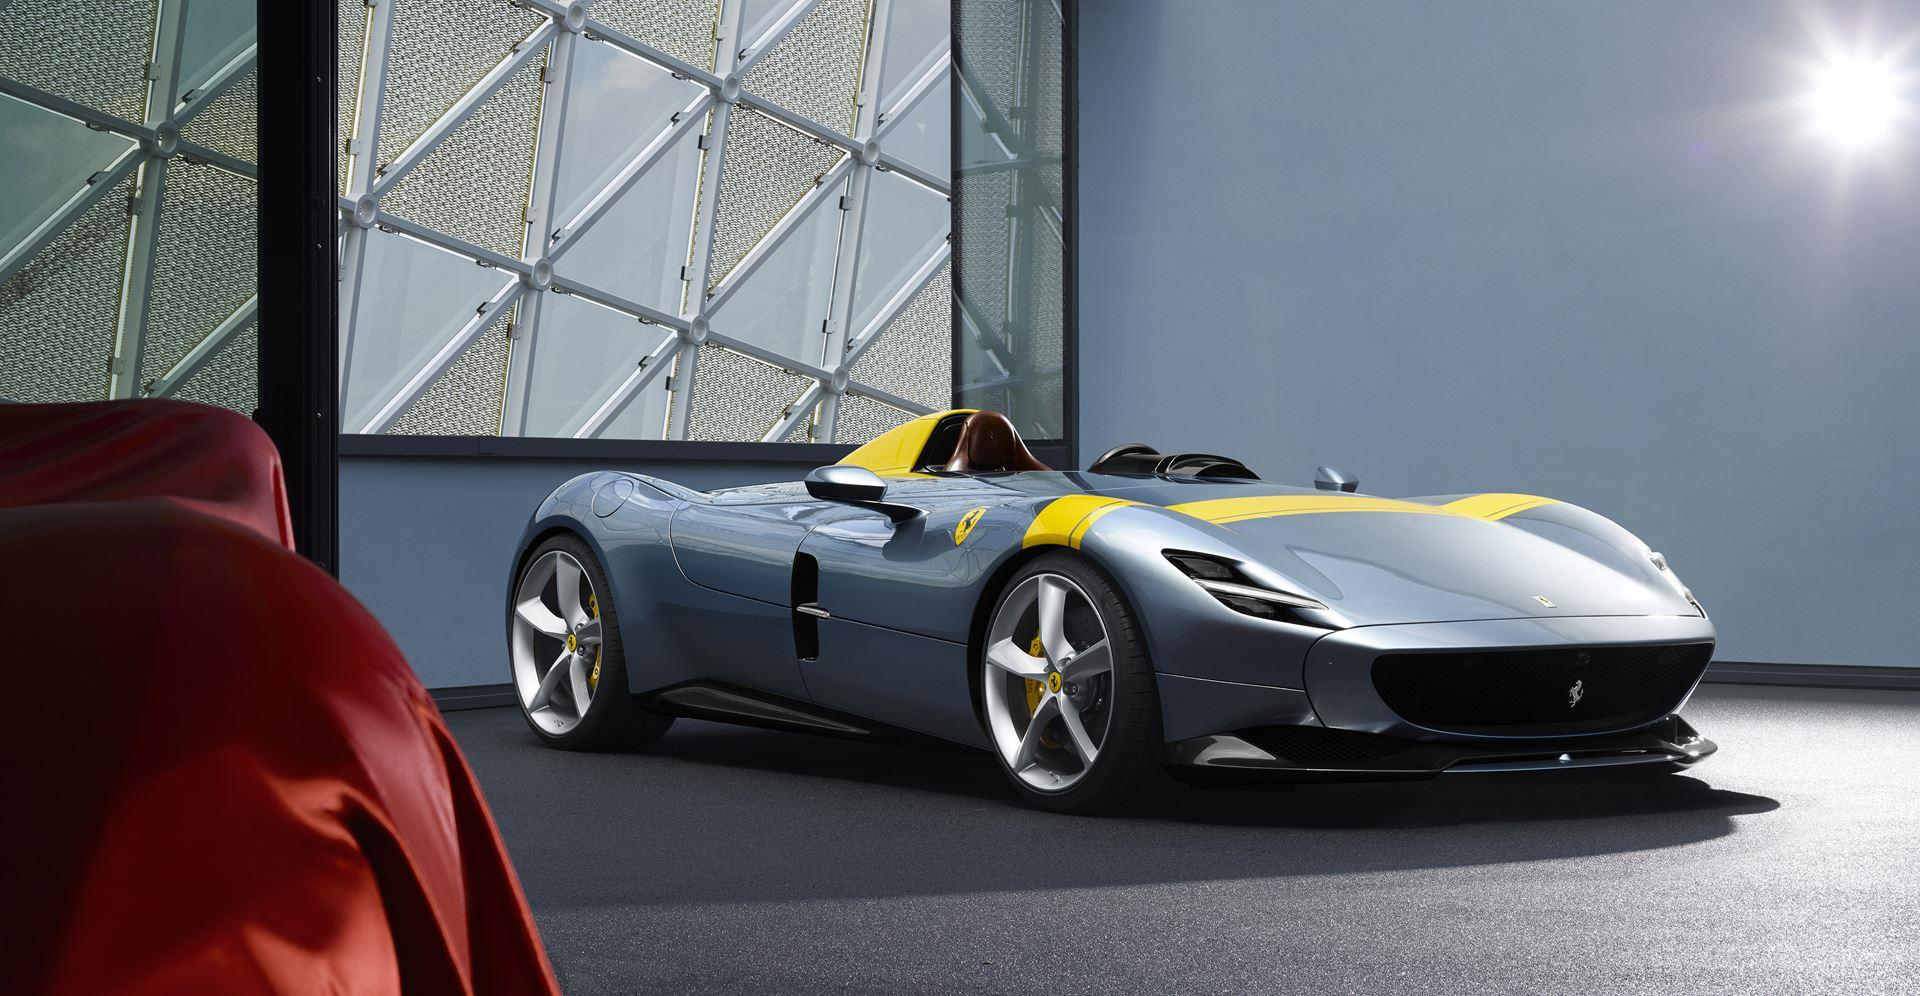 2018 Ferrari Monza Sp1 News And Information Research And